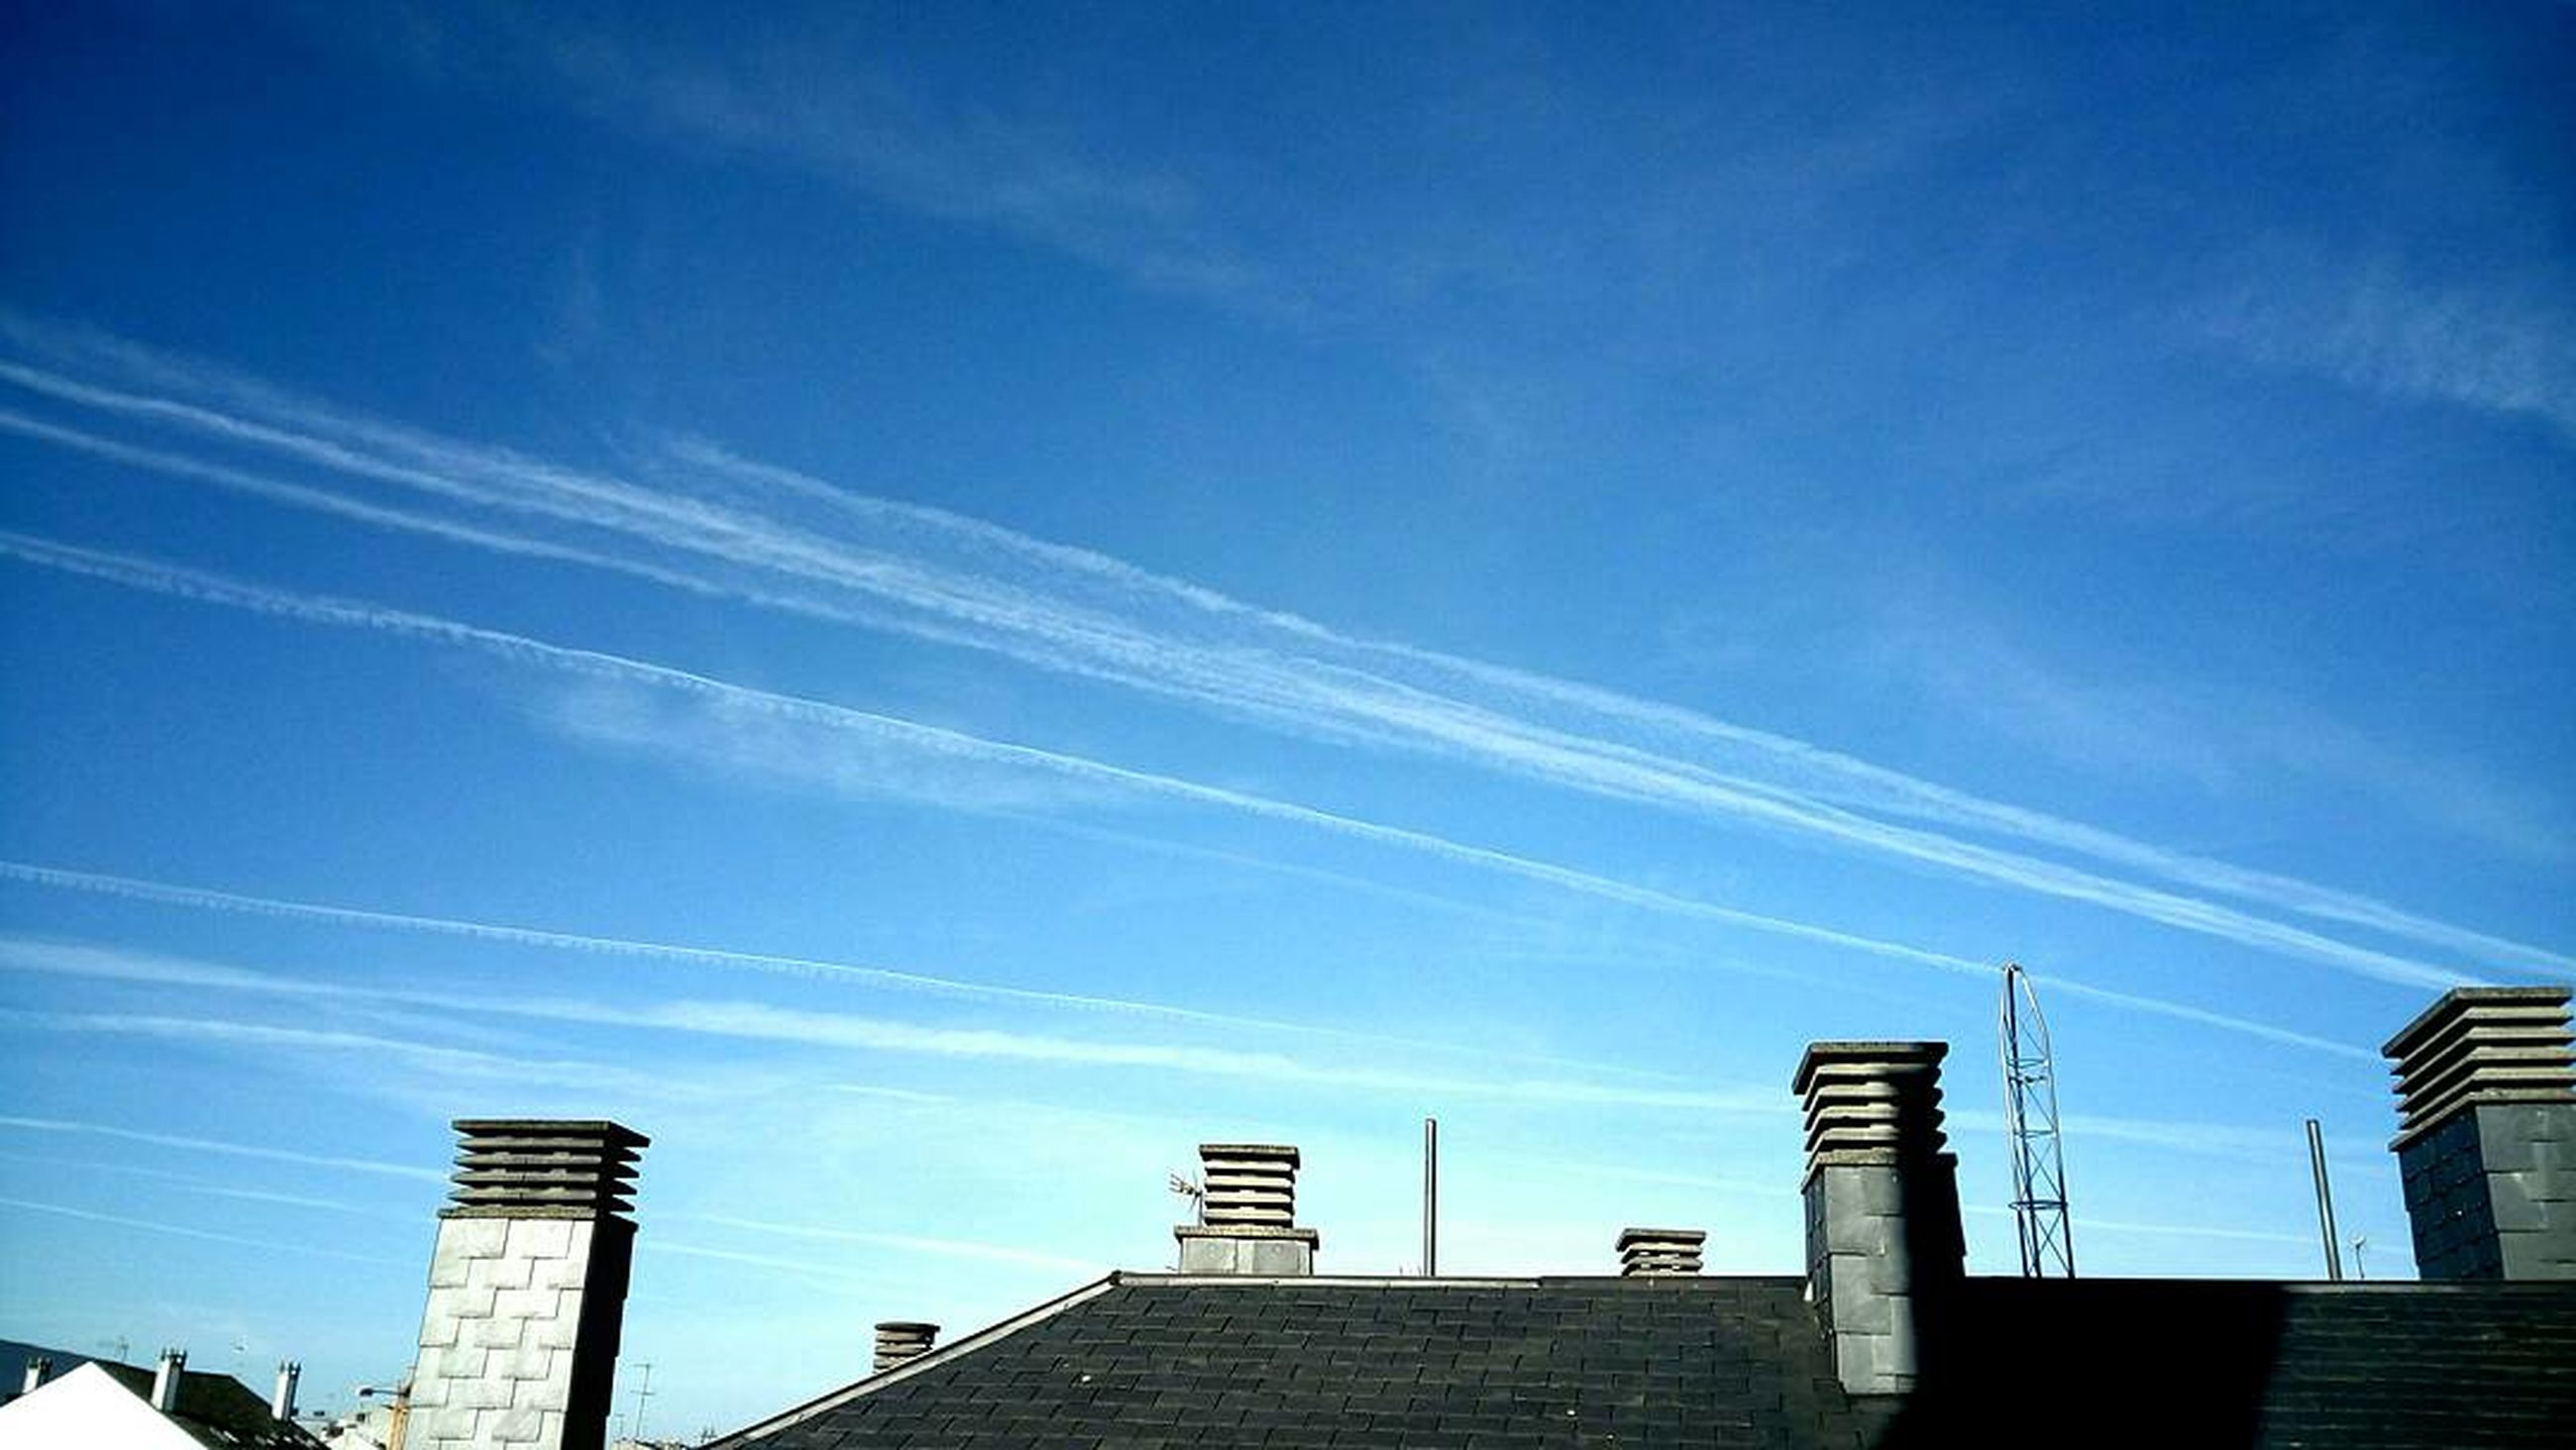 built structure, architecture, building exterior, sky, vapor trail, low angle view, no people, outdoors, day, nature, contrail